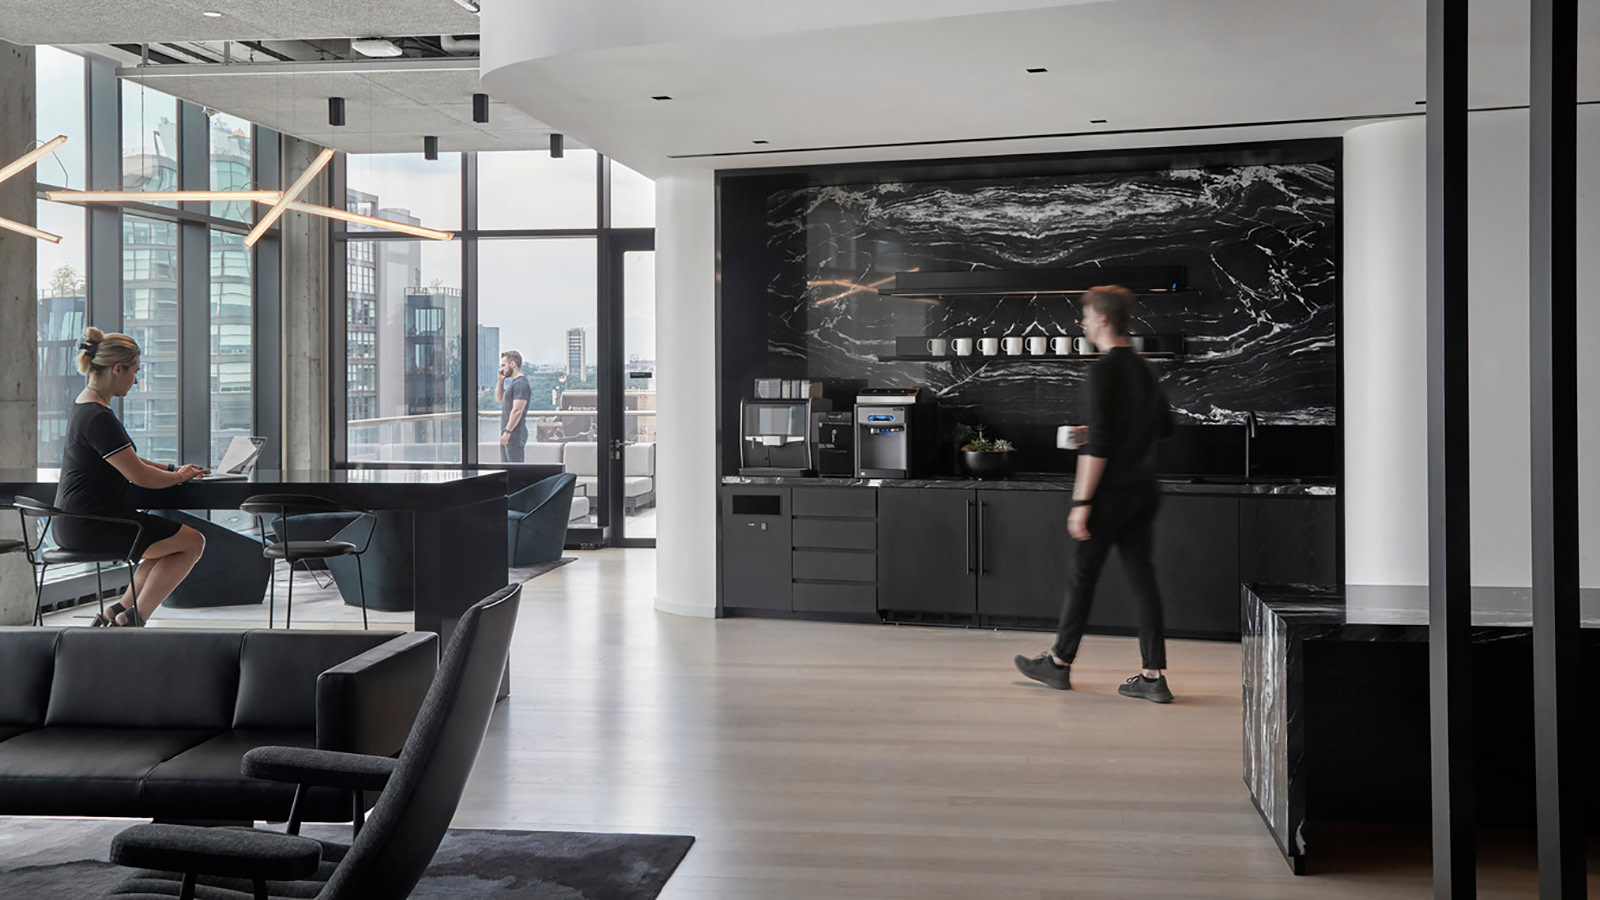 A café space at Yext offers impressive views and exterior access.